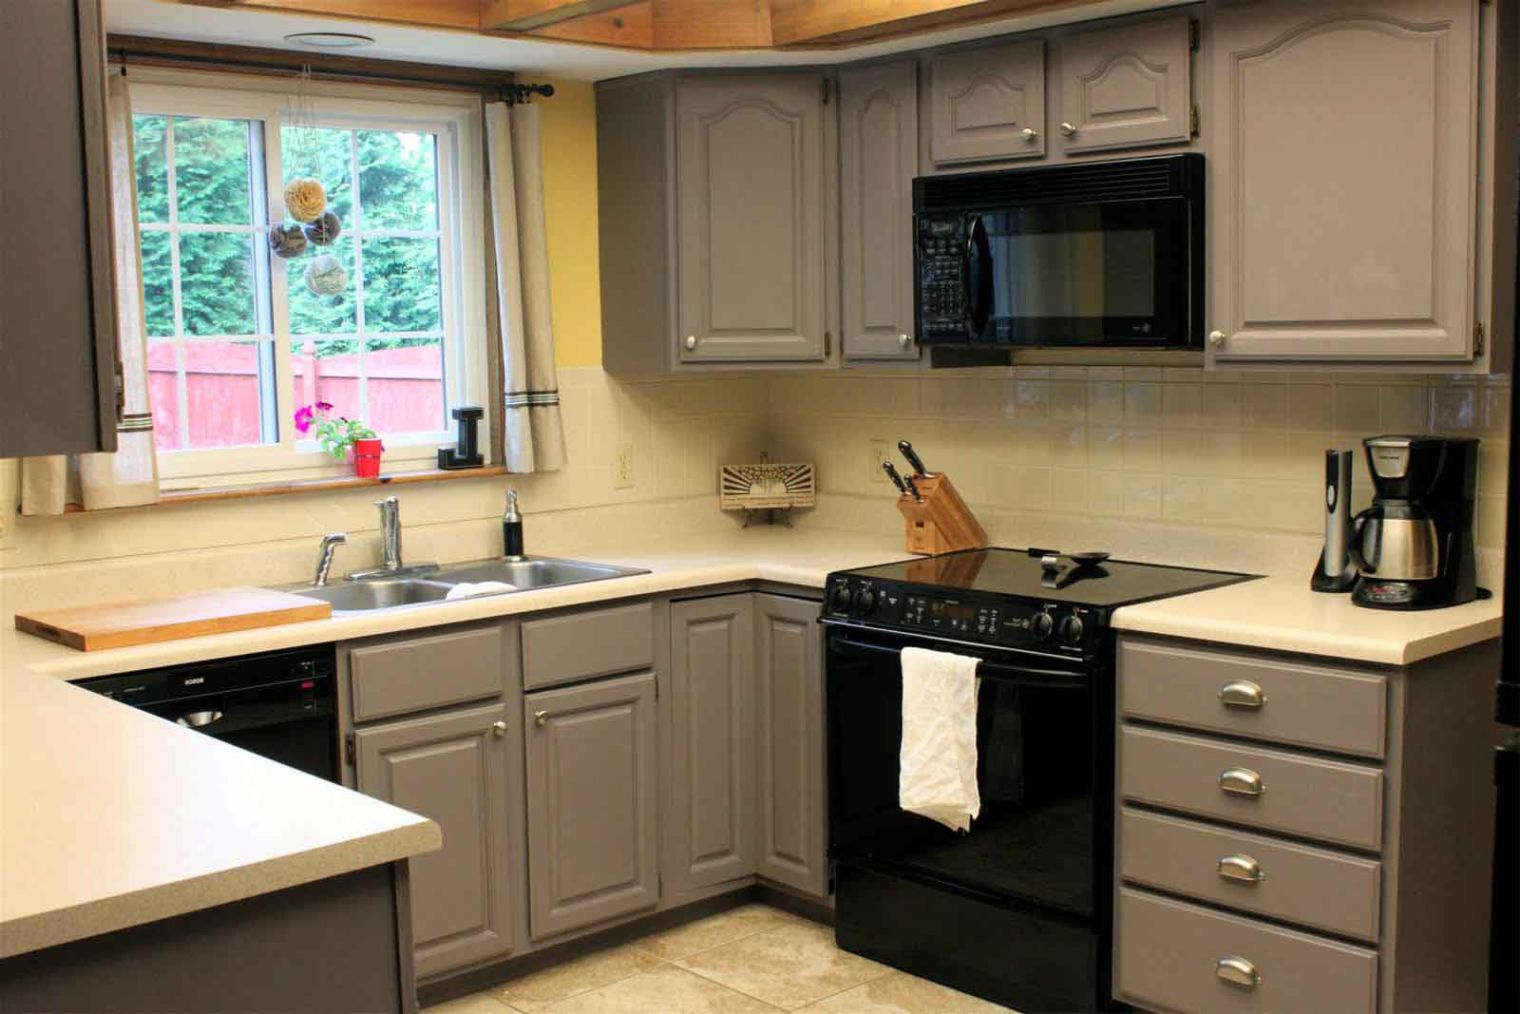 gray painted kitchen cabinets grey painted kitchen cabinets in small kitchen space 3933